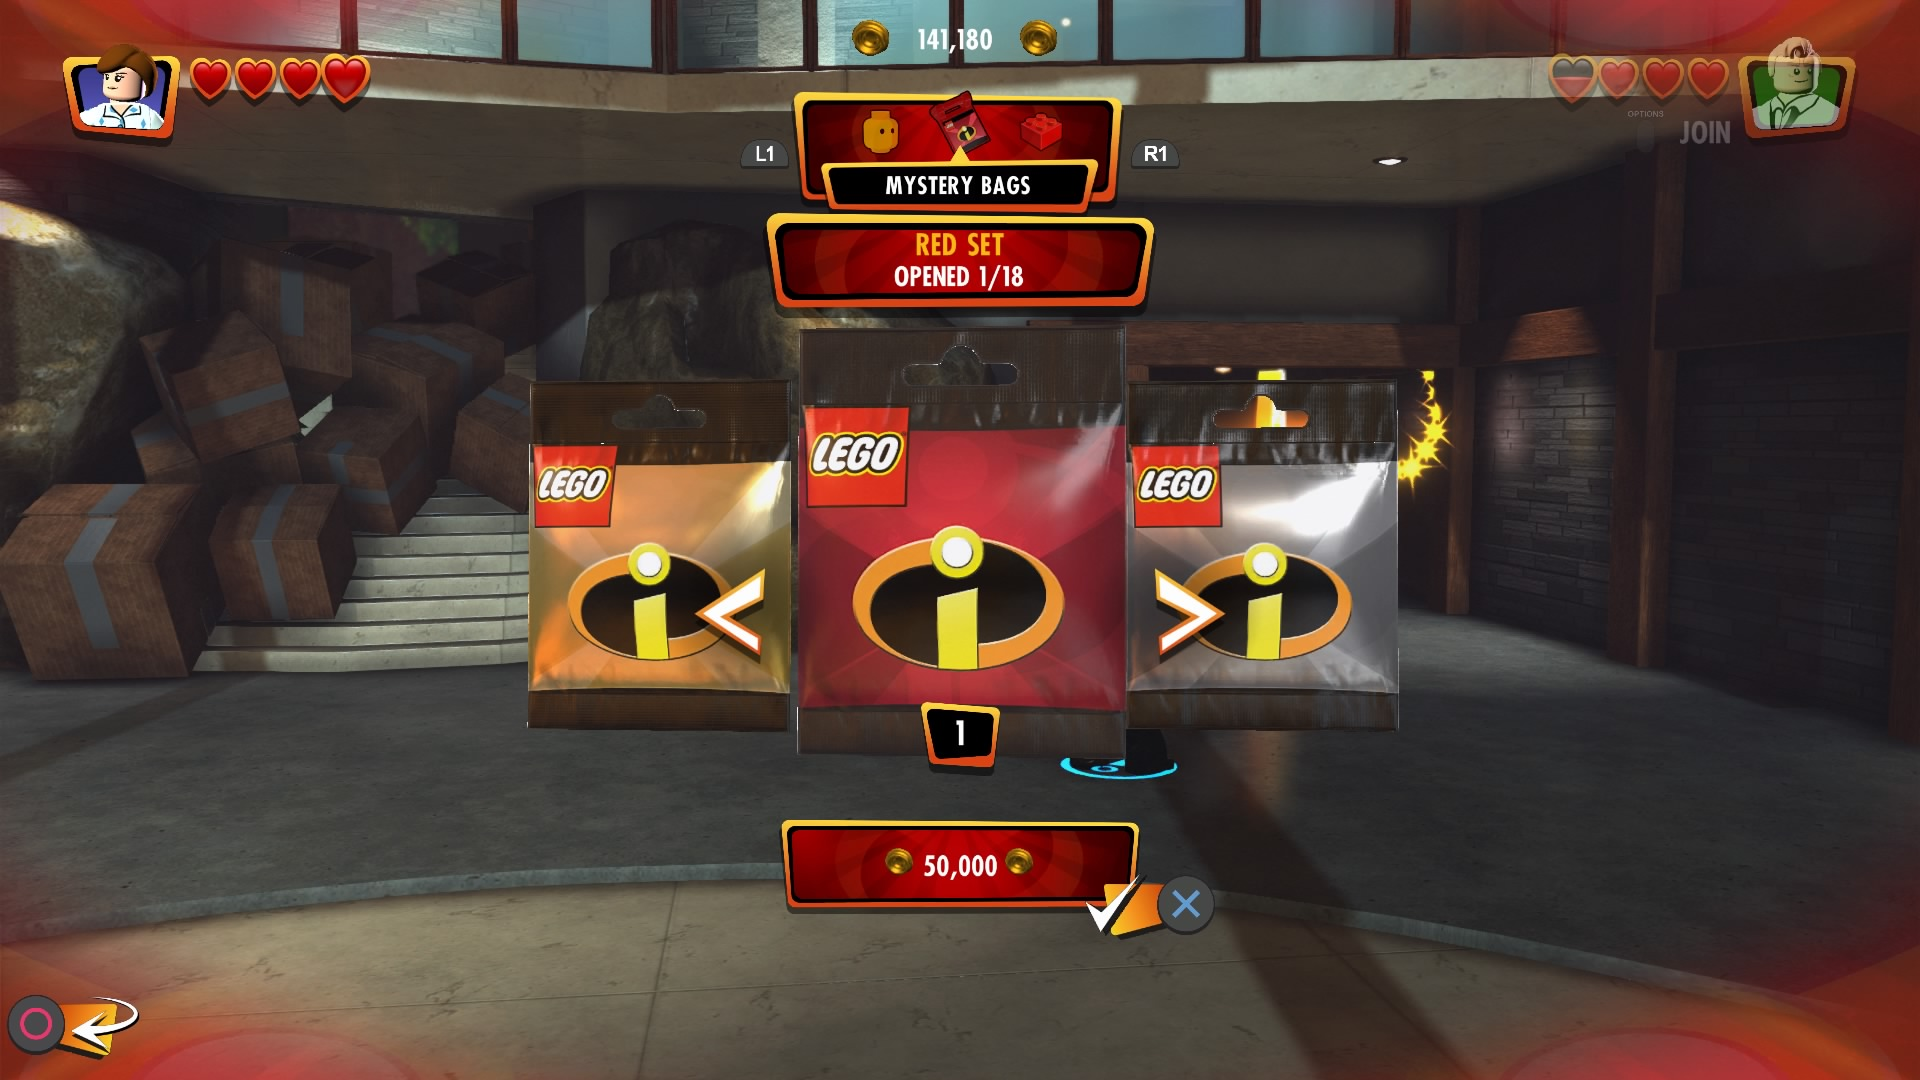 Lego The Incredibles mystery bags